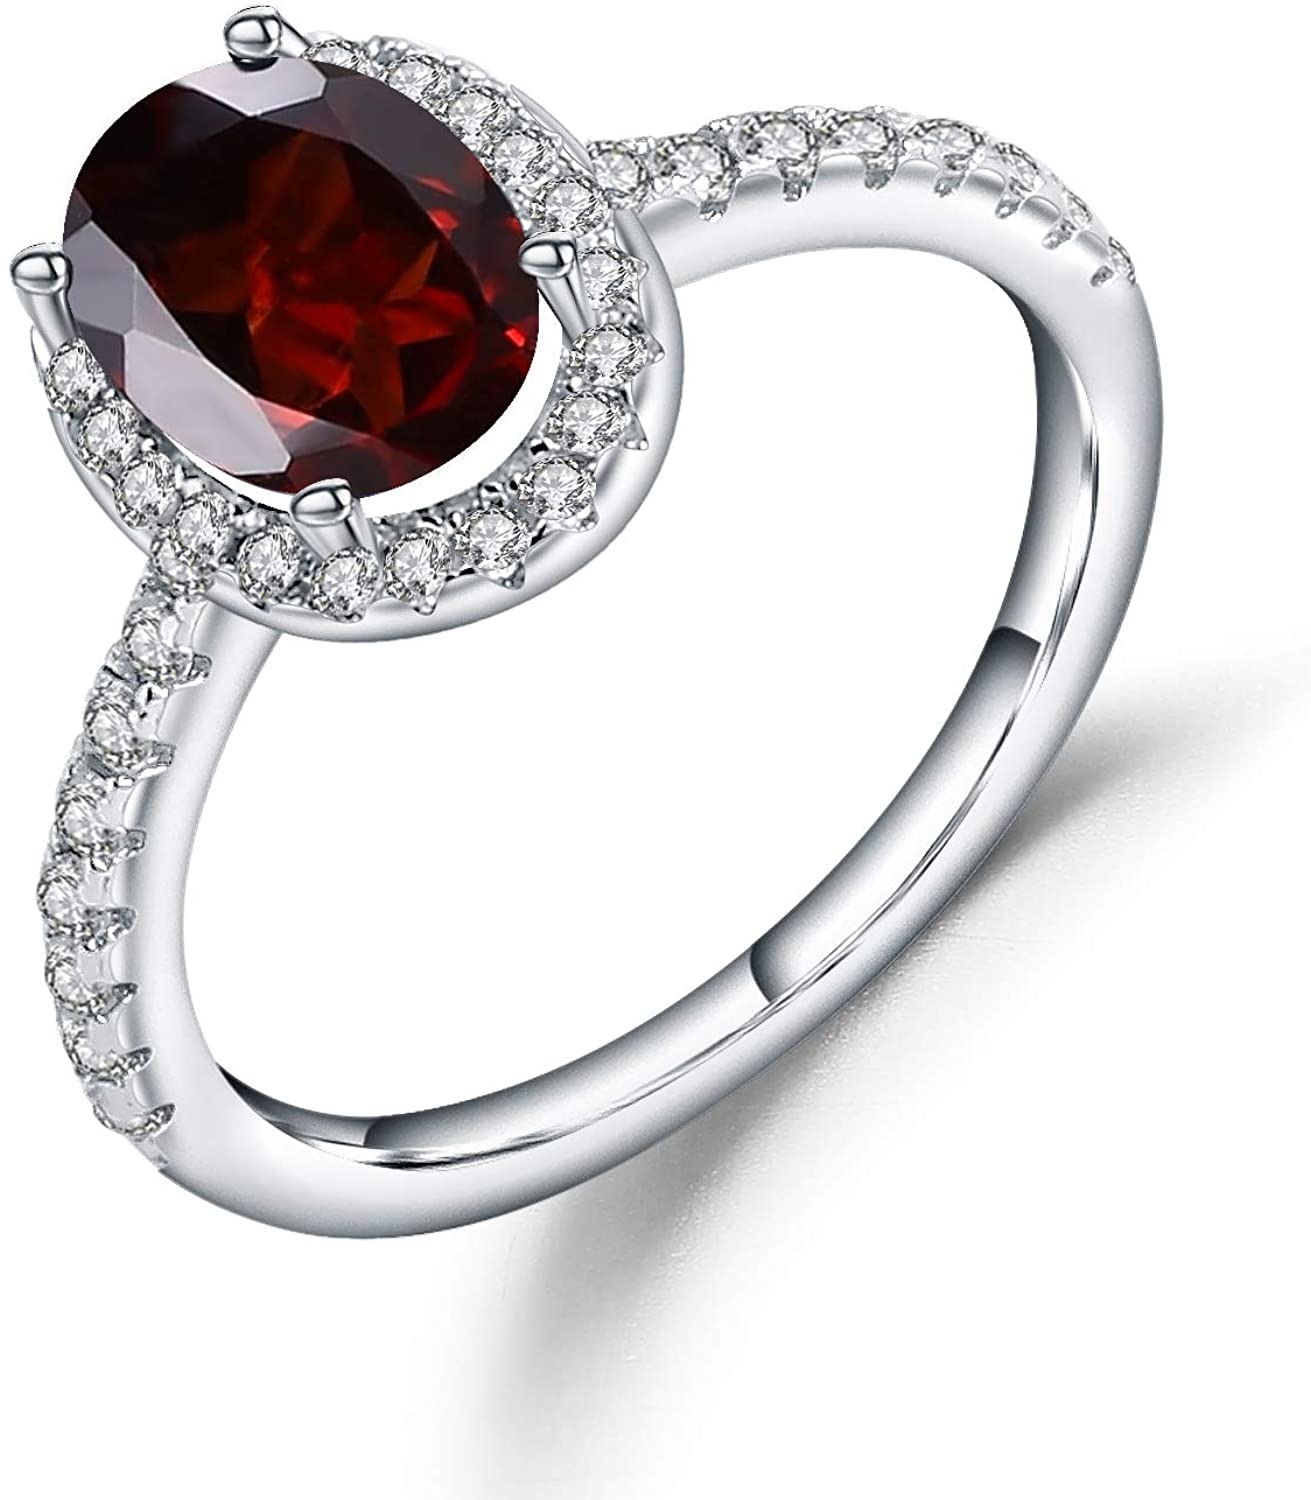 1.47Ct Oval Red Garnet 925 Sterling Silver Gemstone Halo Engagement Ring For Women Size 5 to 10